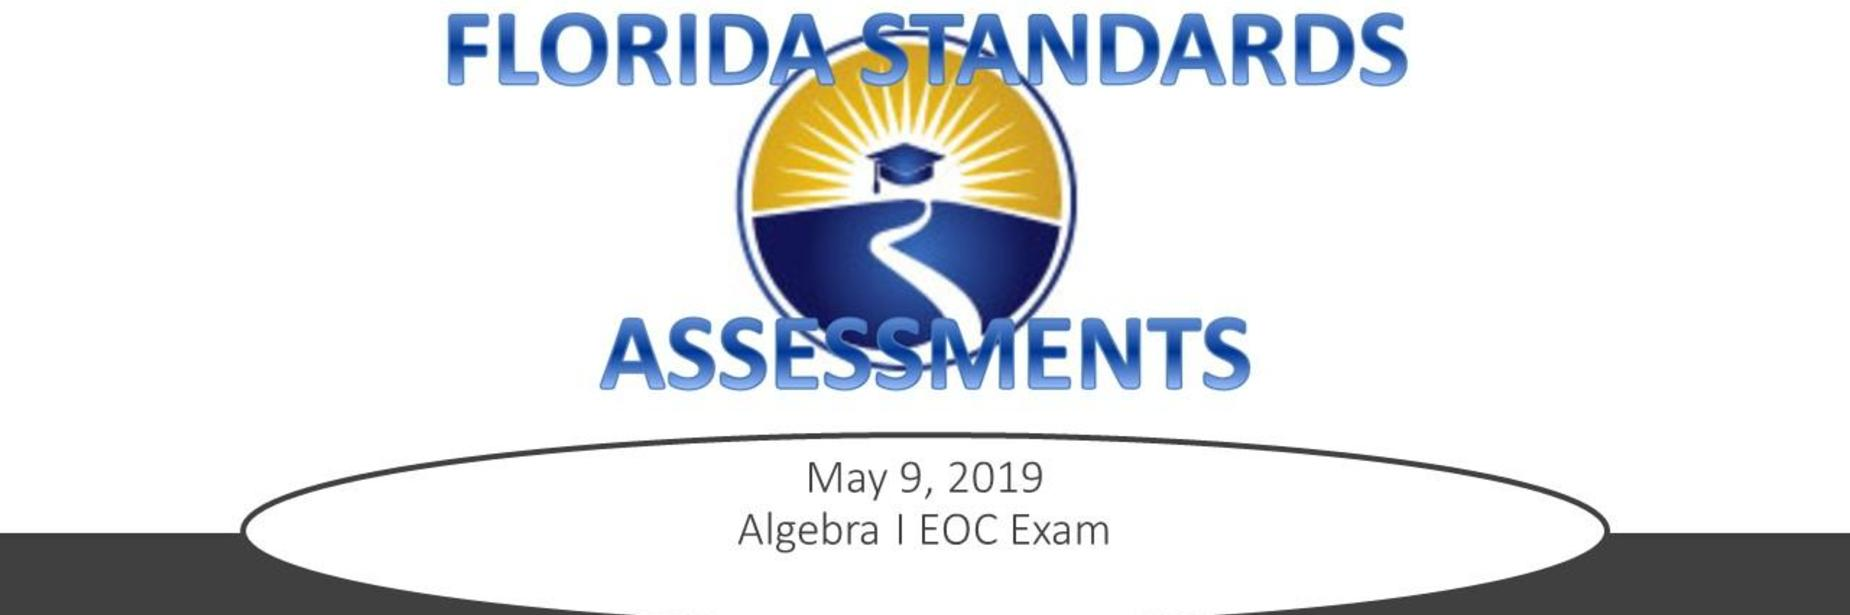 Florida Standards Assessments May 9, 2019 Algebra I EOC Exam